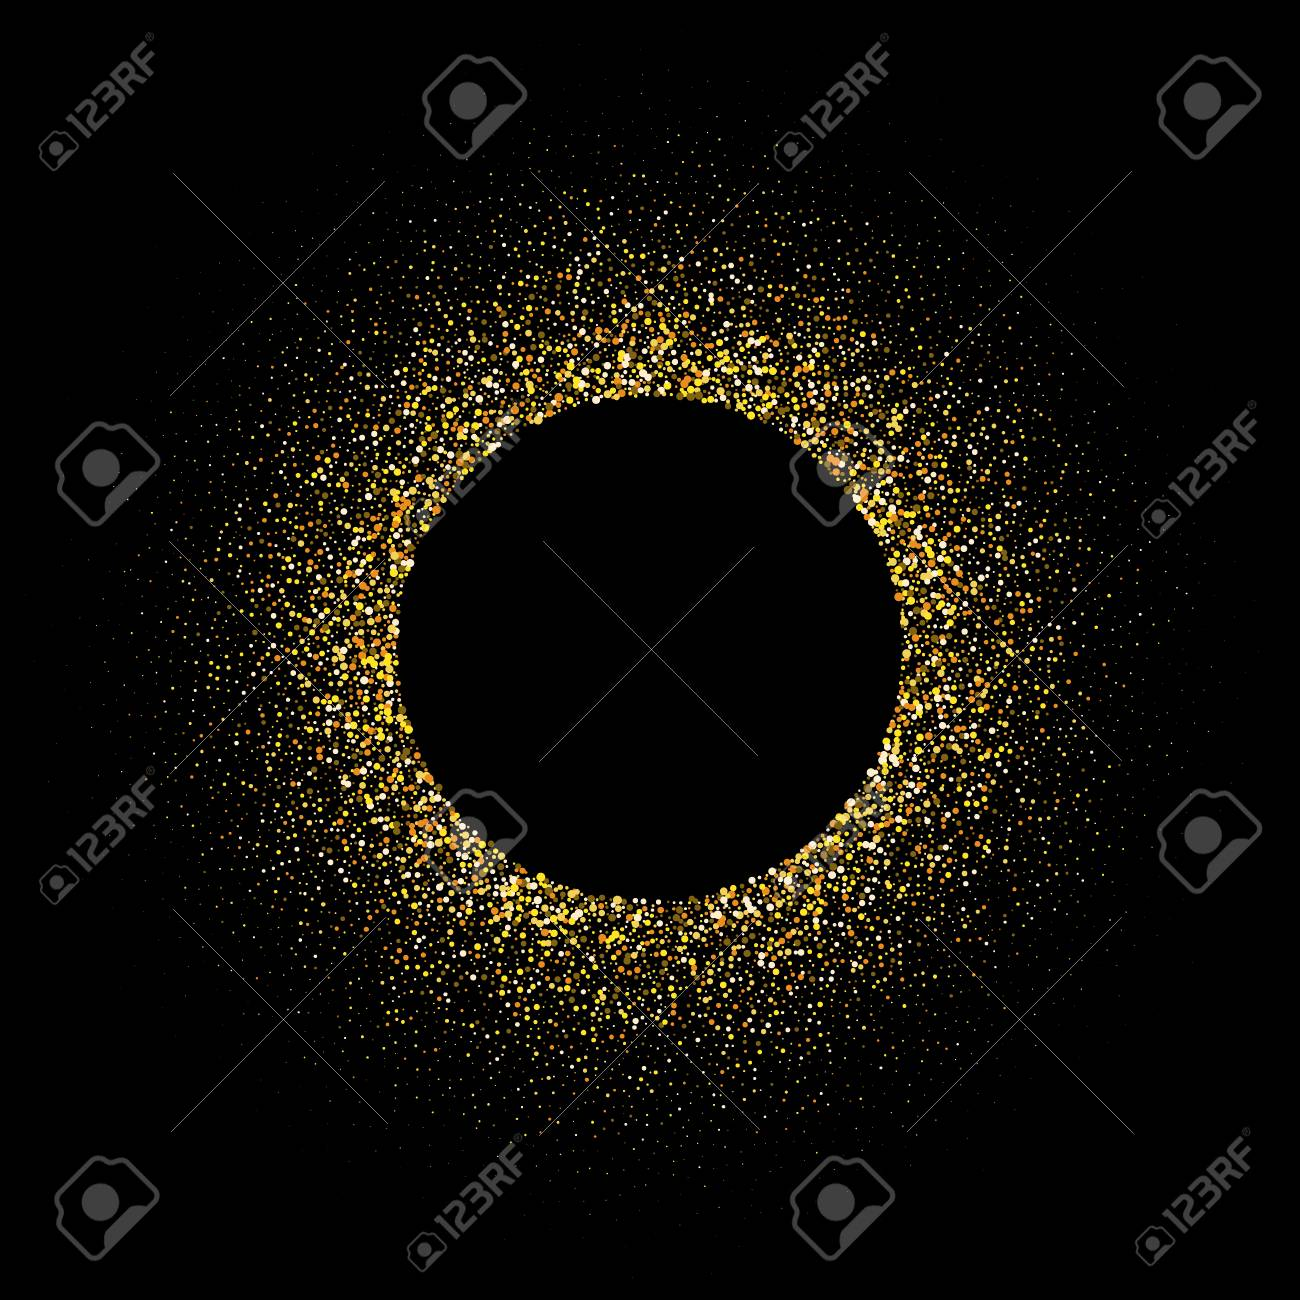 Golden glitter background with copy space. Golden star dust glam circle. - 133954427